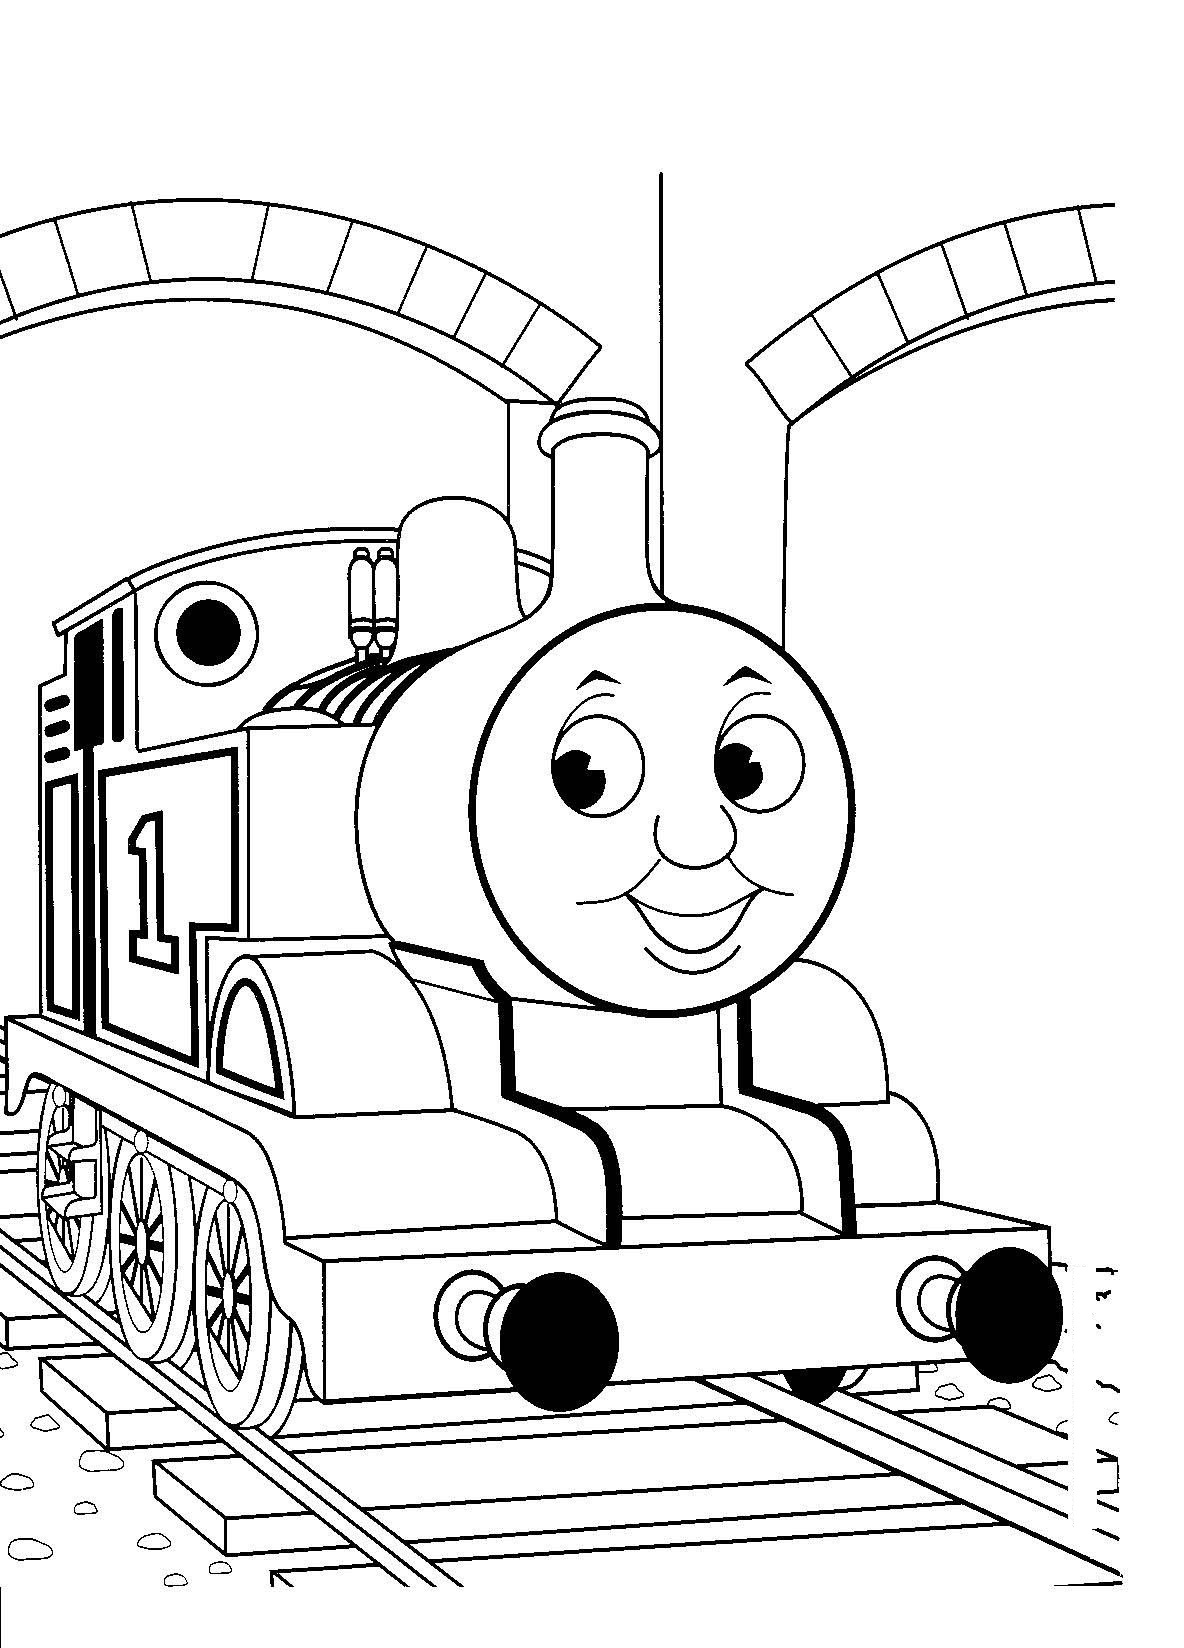 Free printable train coloring pages for kids for Printable thomas the train coloring pages